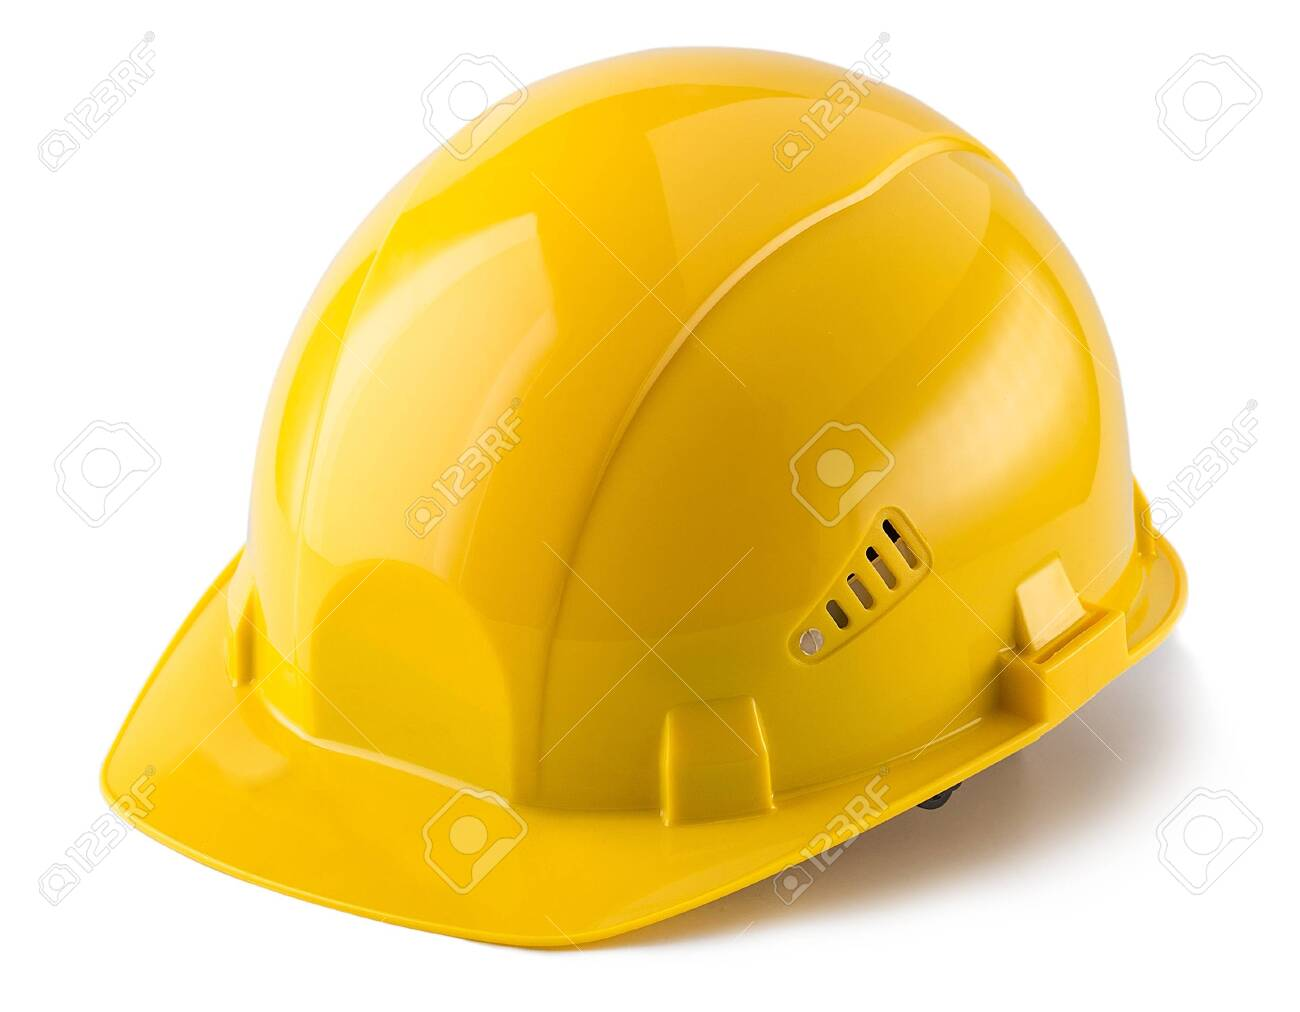 Yellow safety helmet isolated on white background - 136752401